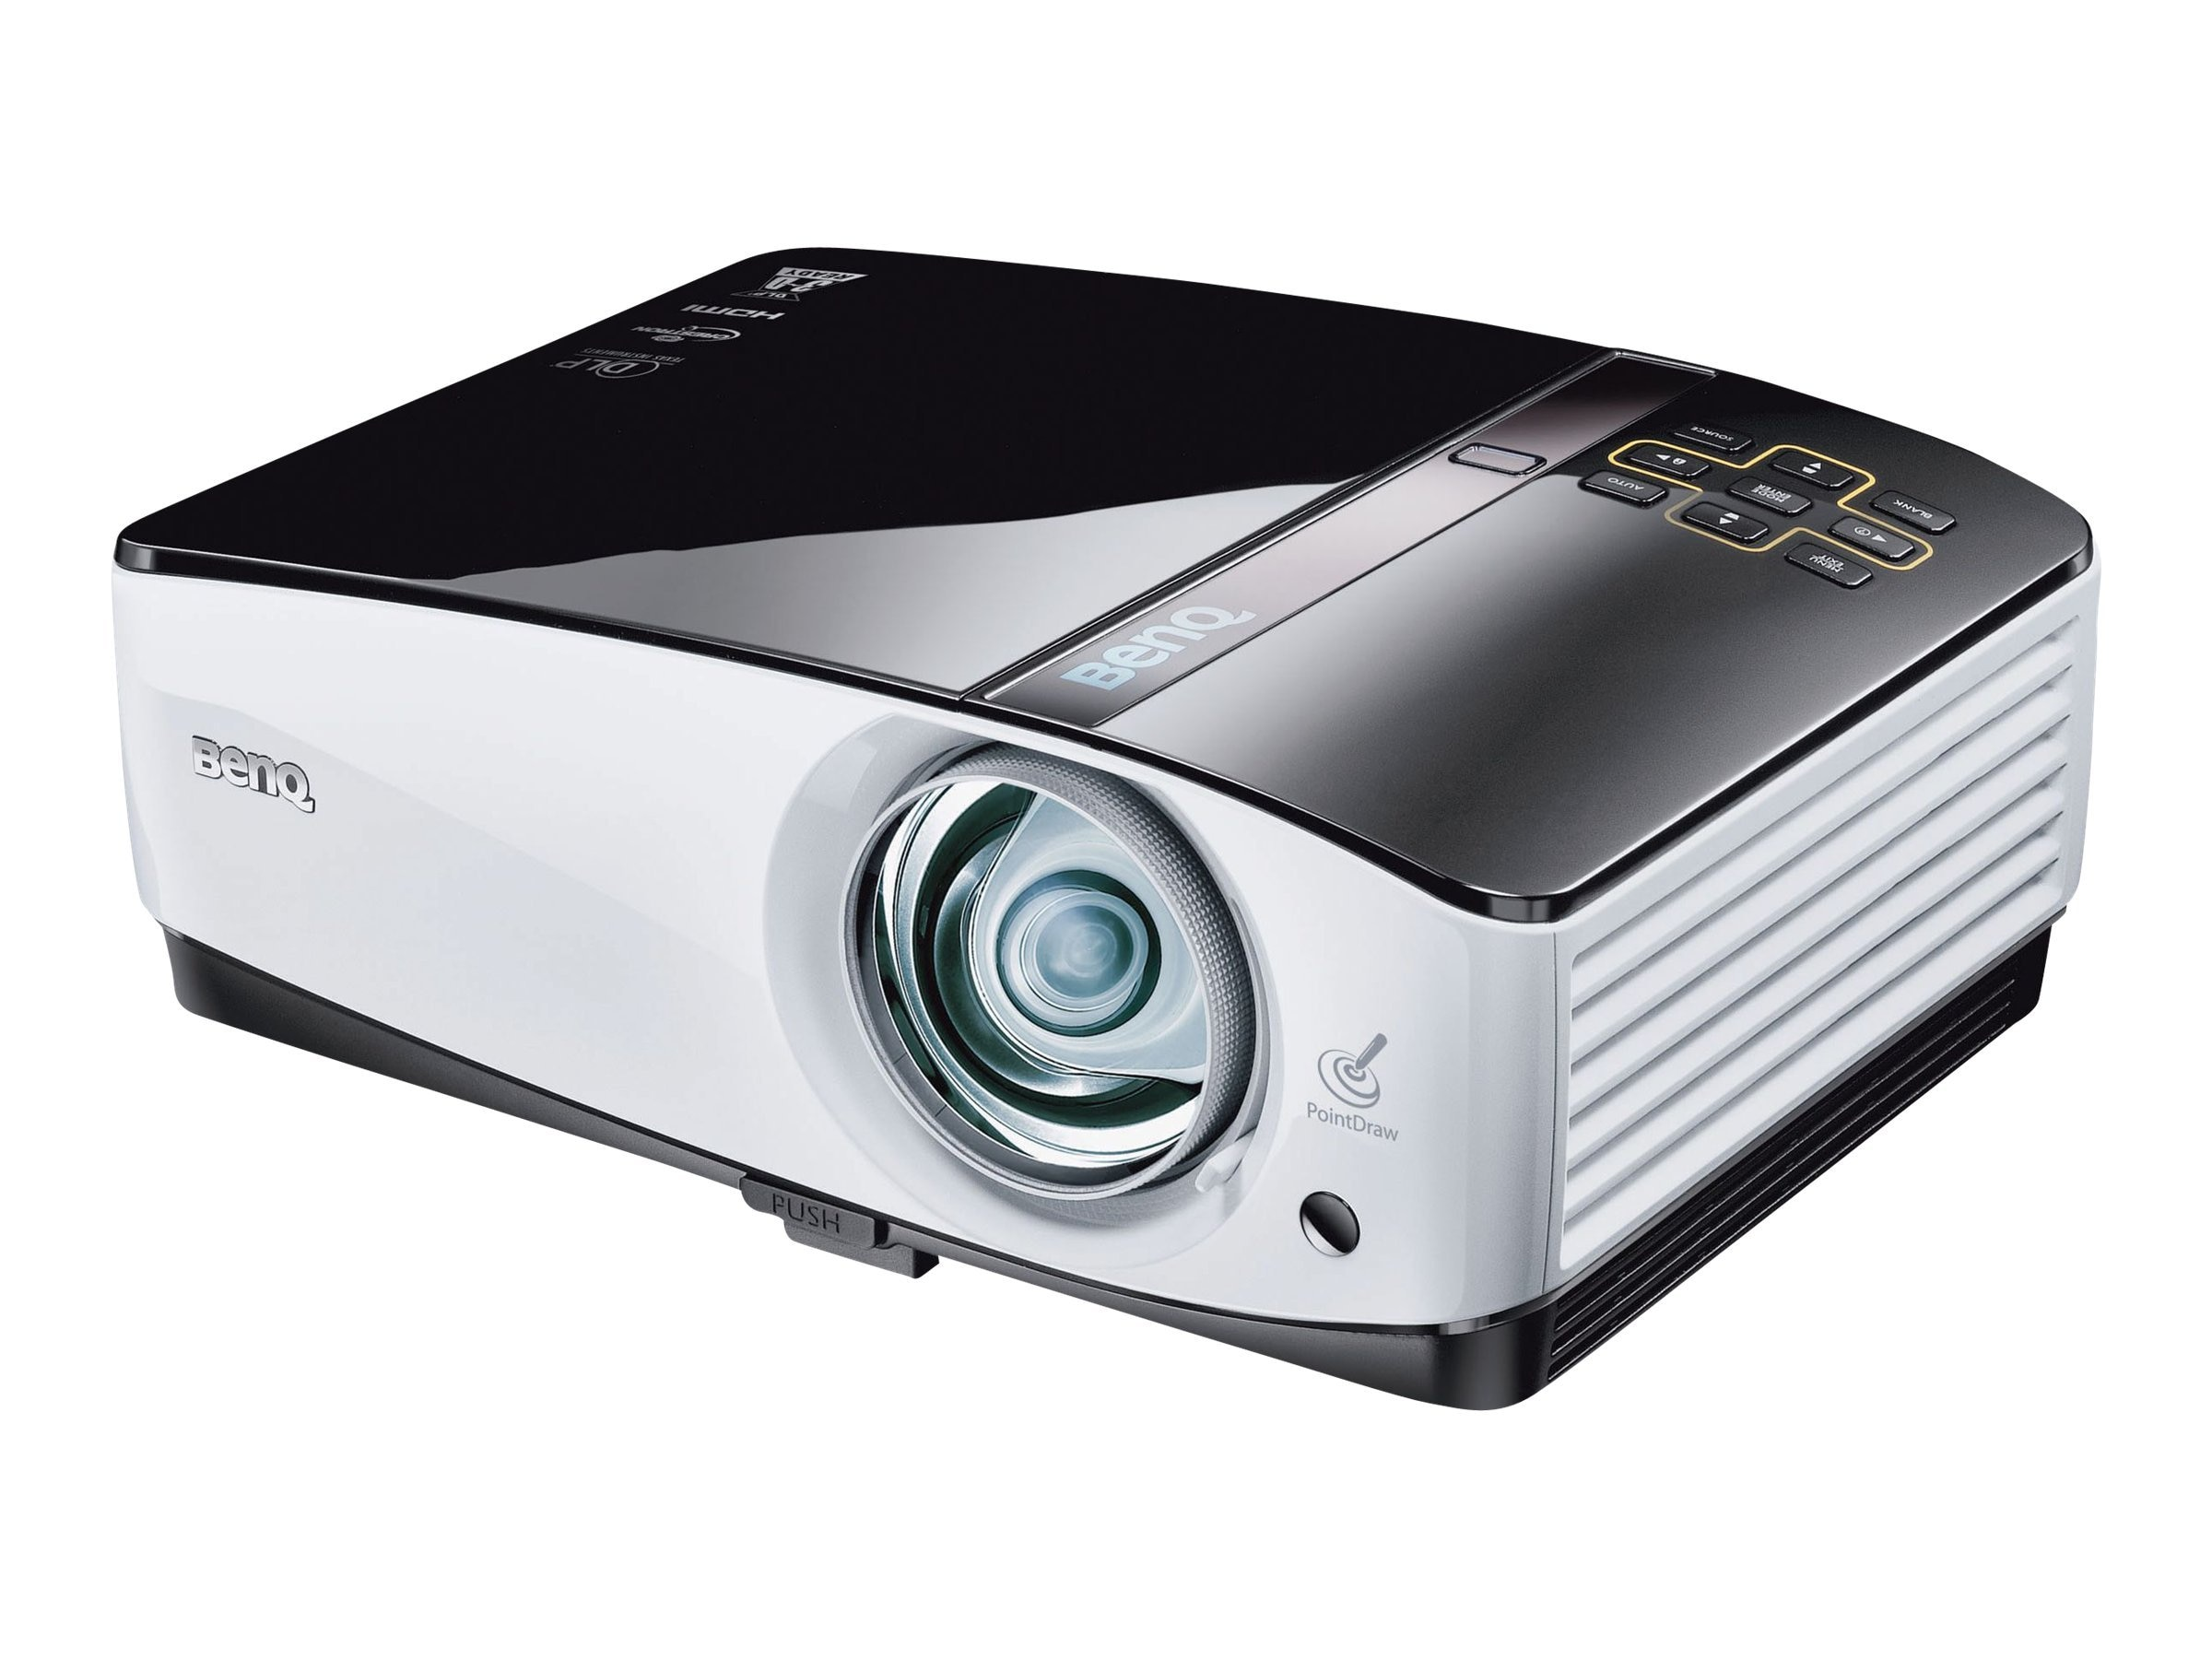 Benq MP780ST+ WXGA DLP Projector with Speakers, 2500 Lumen, MP780ST+